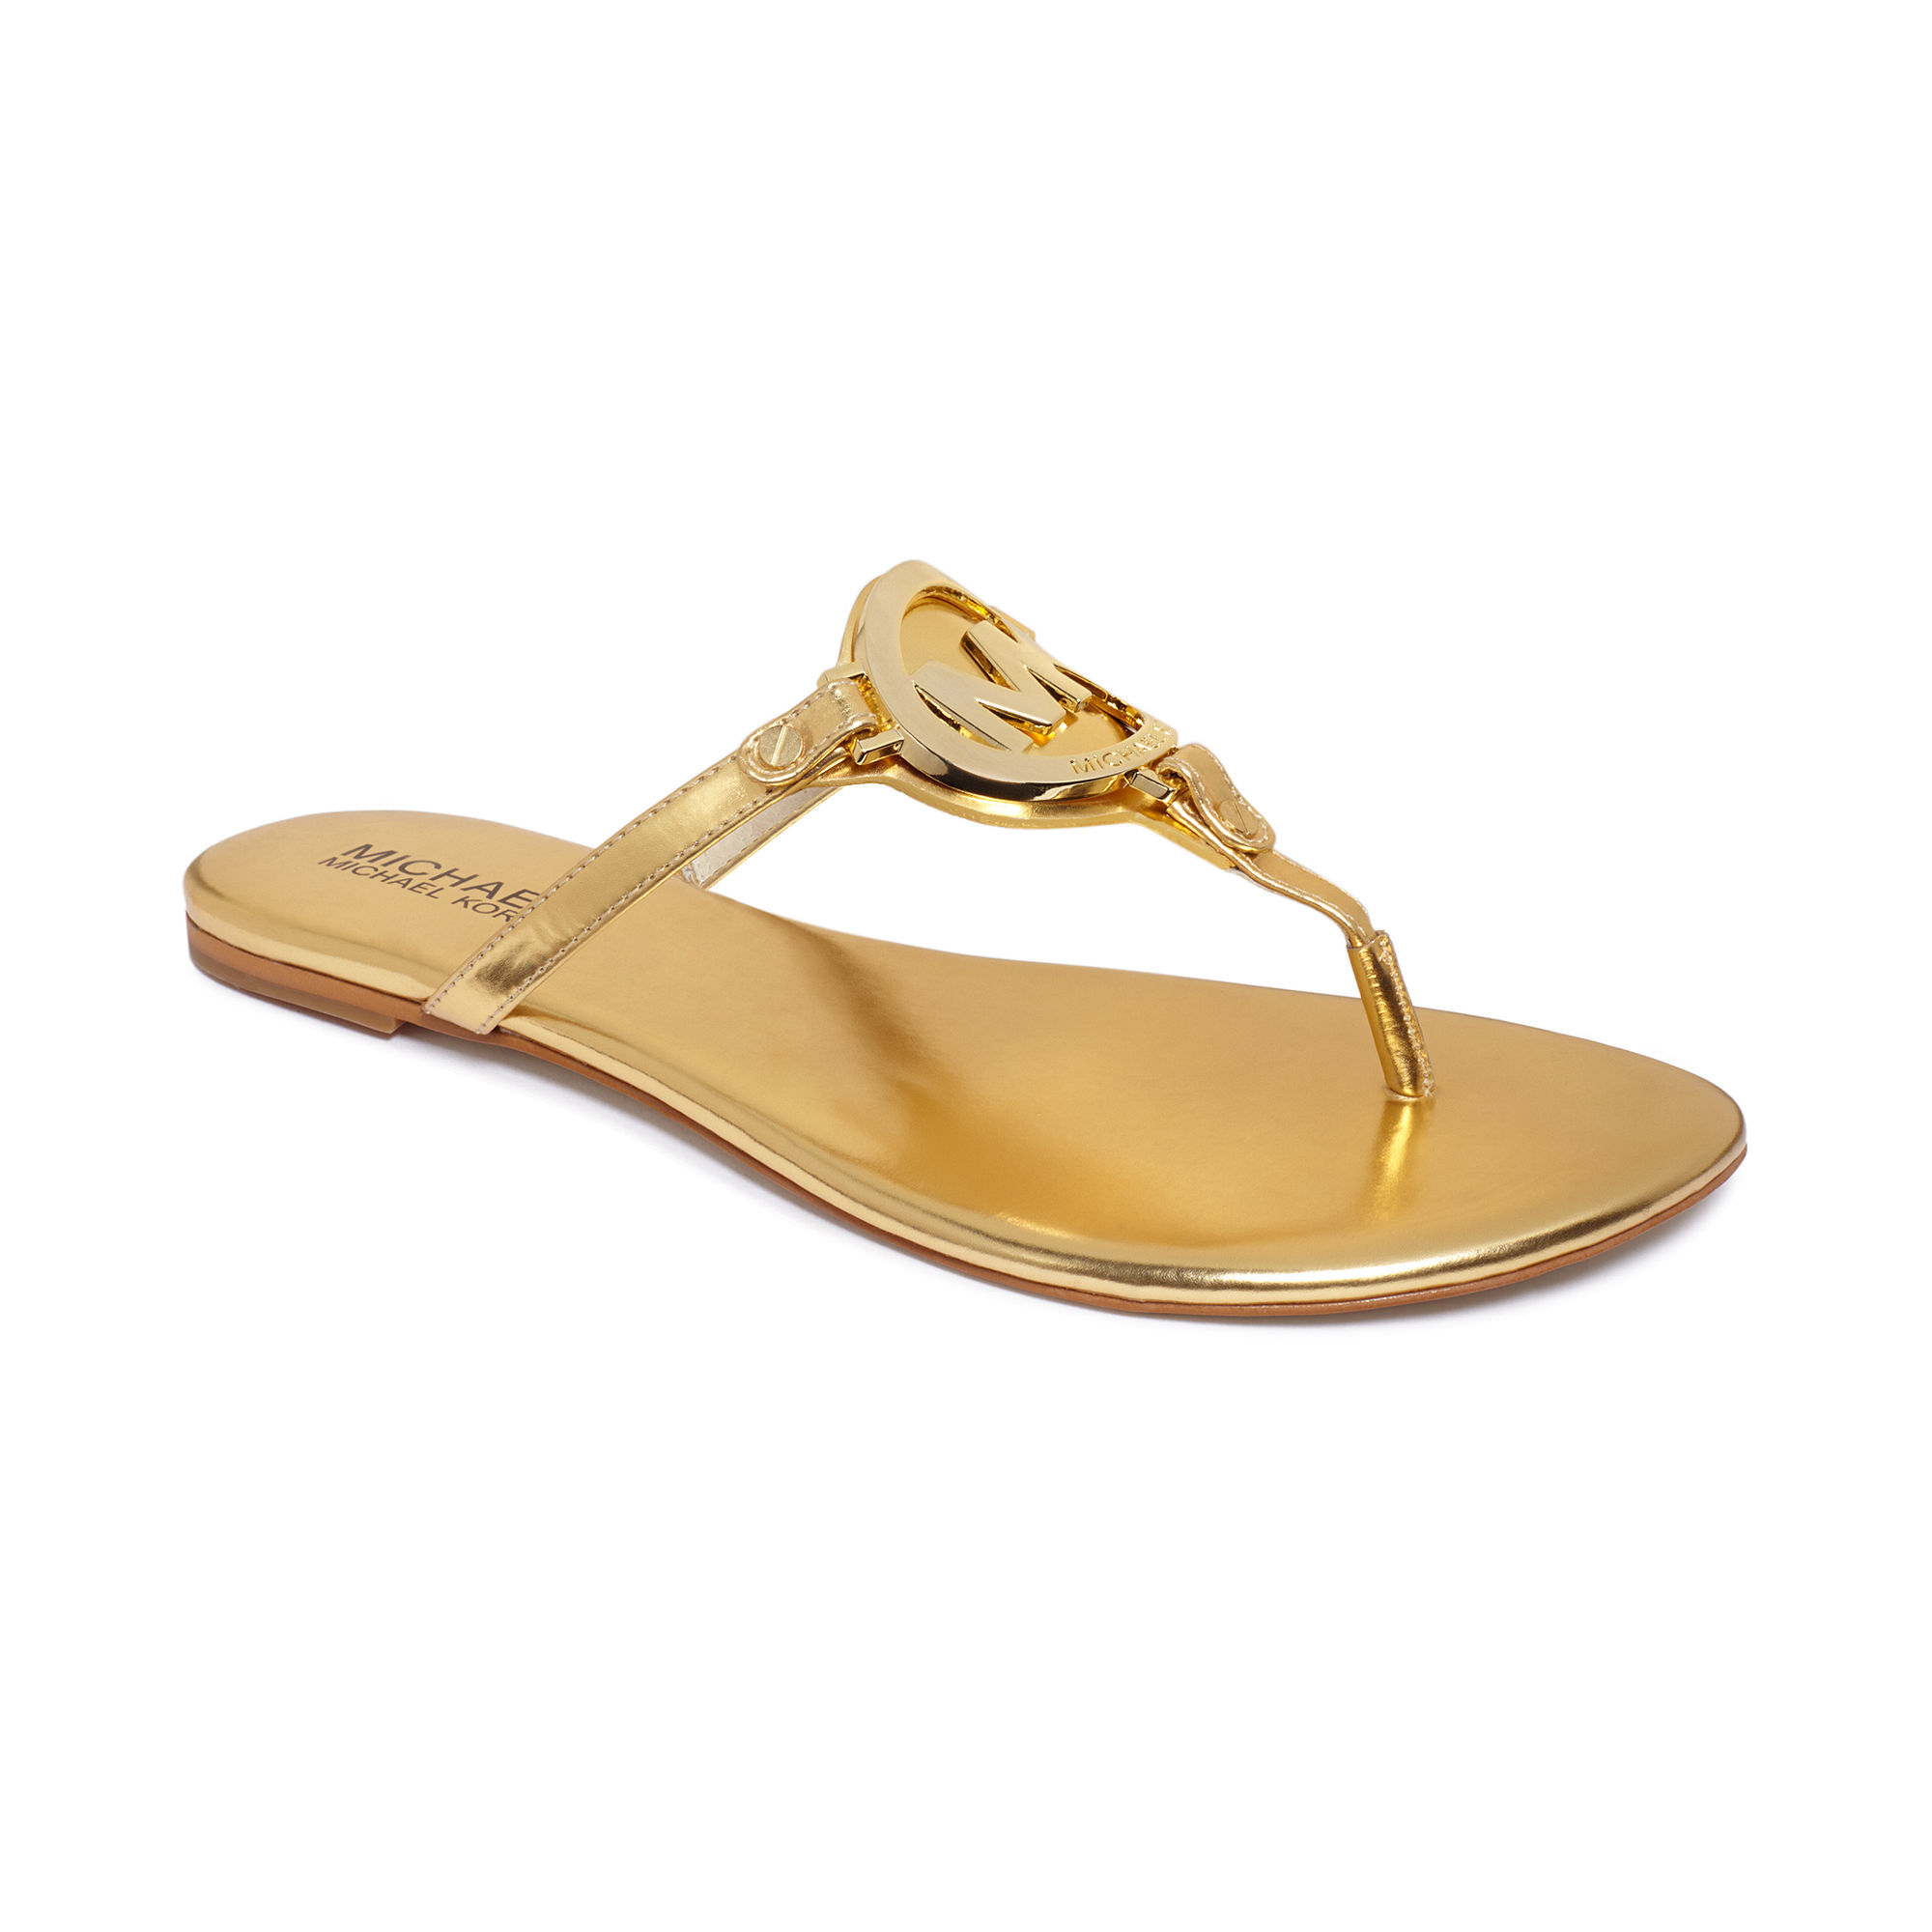 Lyst - Michael Kors Melodie Flat Thong Sandals in Metallic